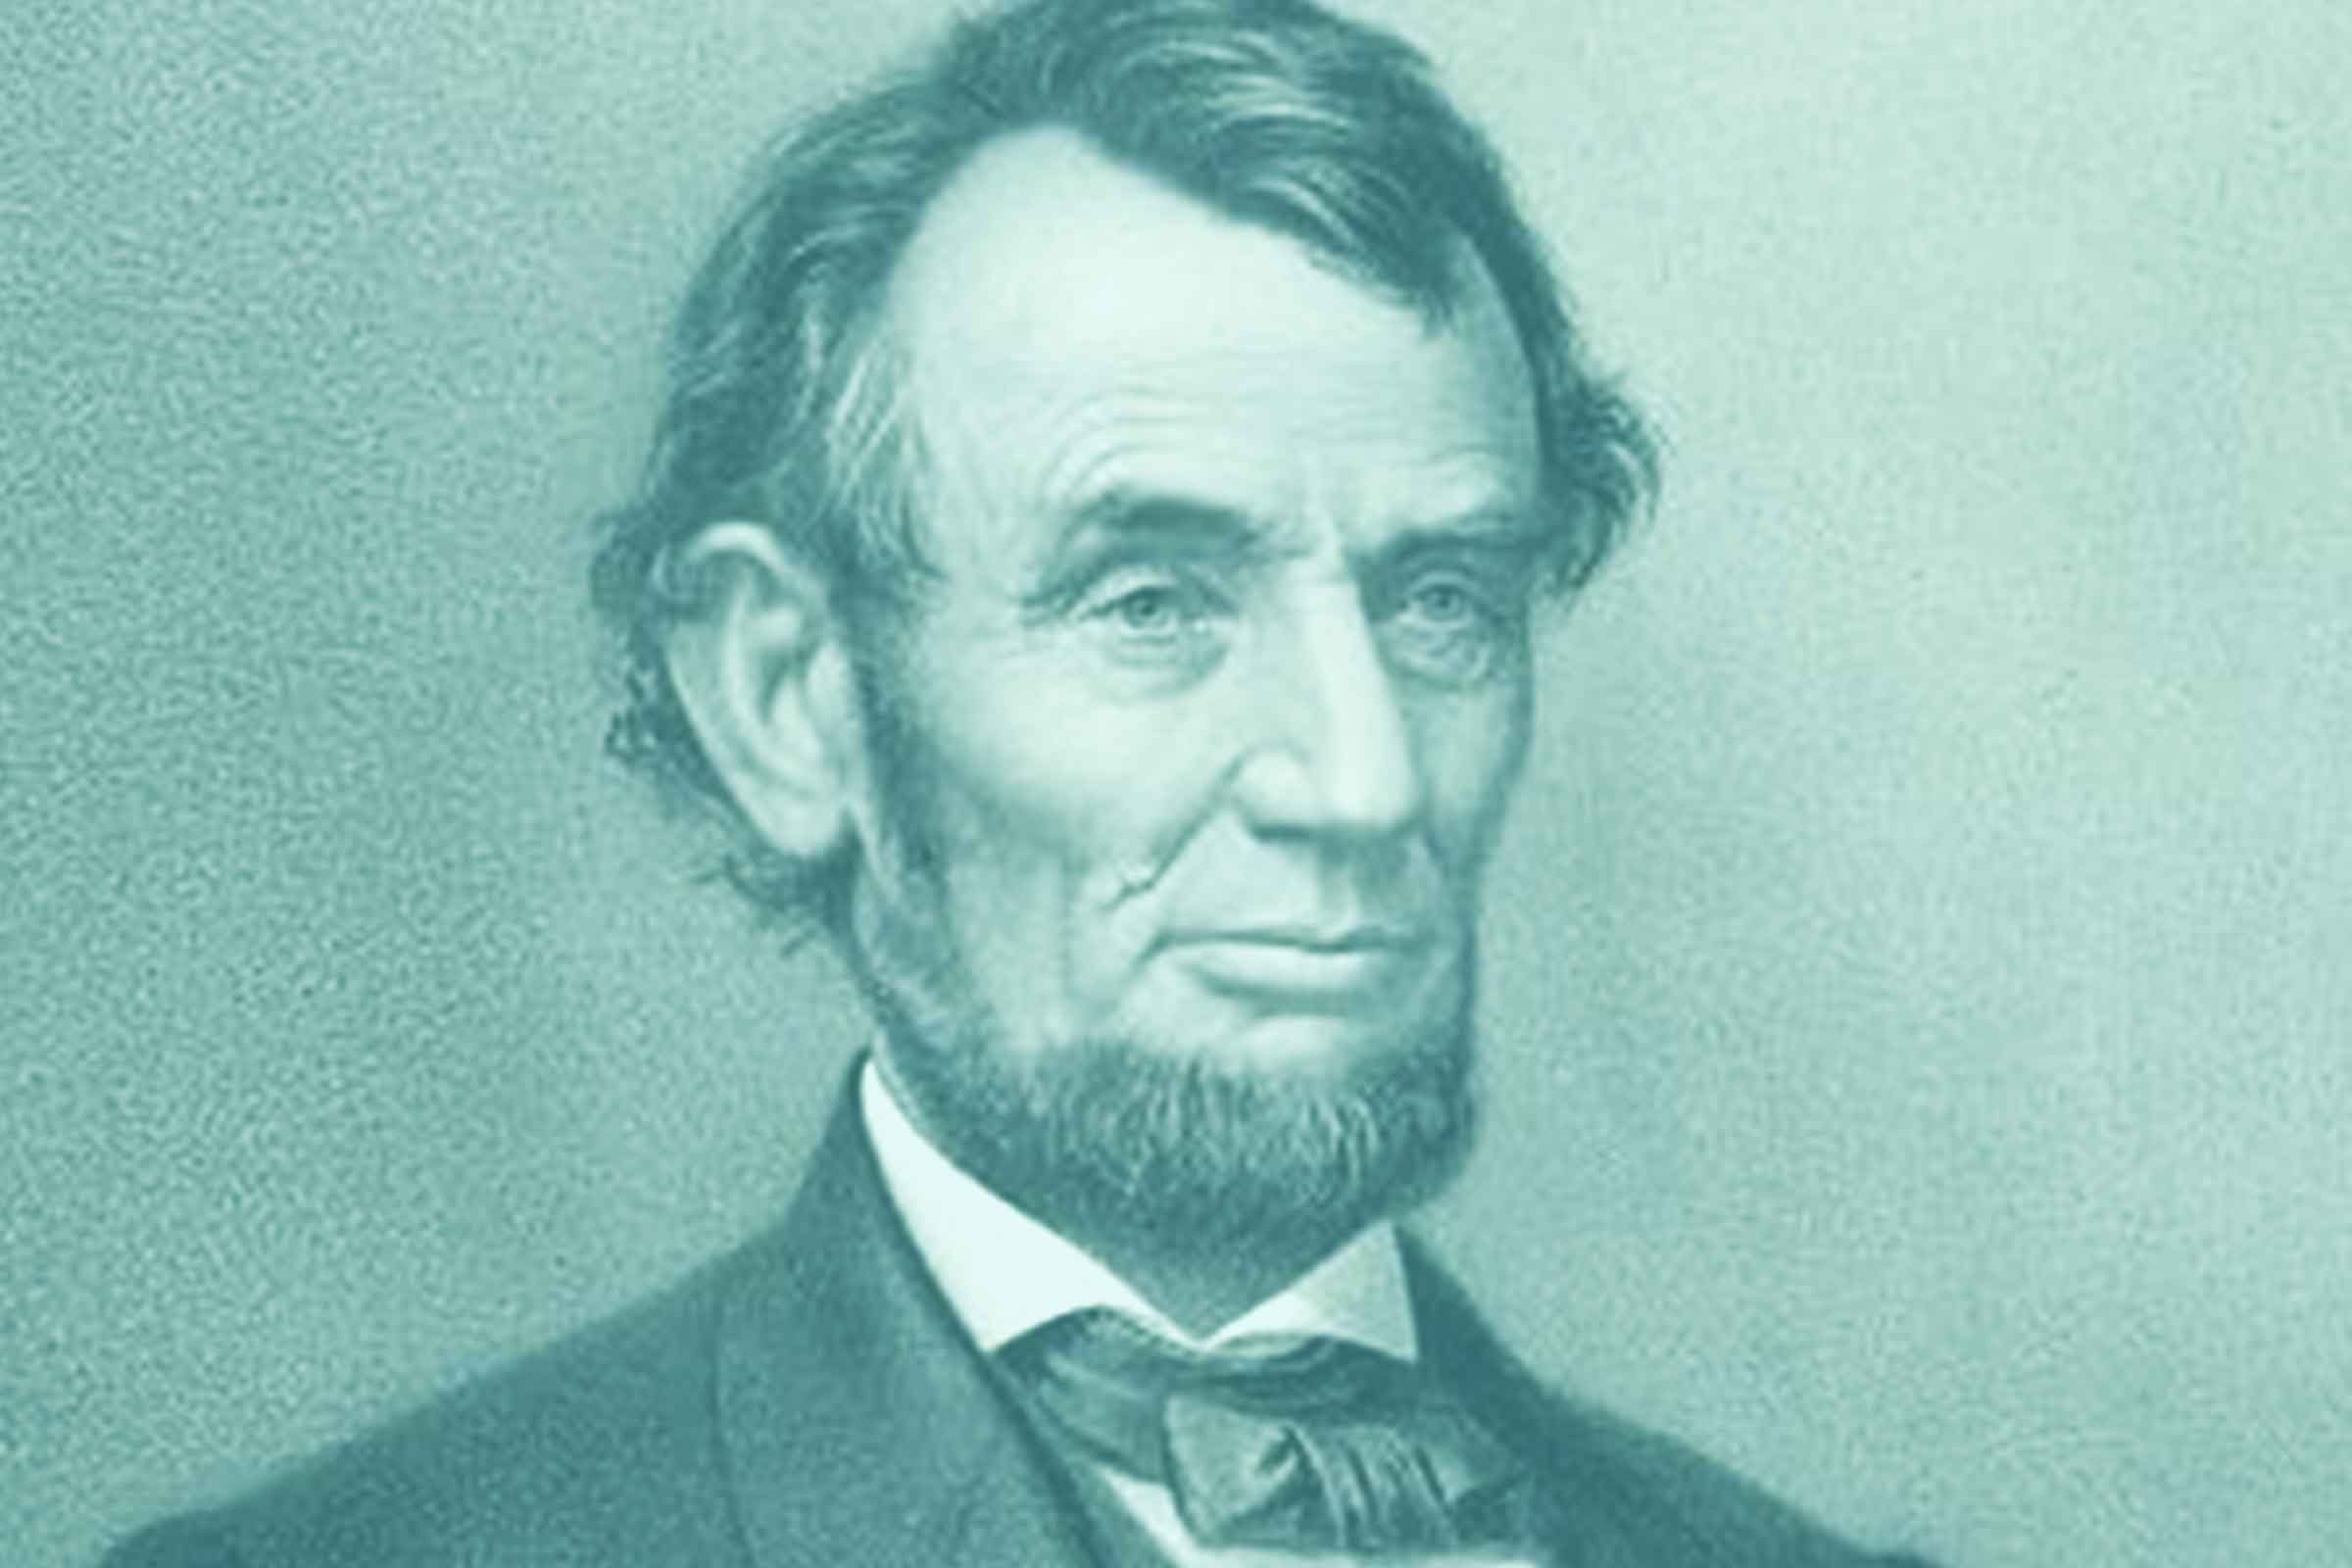 the efforts that president lincoln made during the reconstruction period after the civil war And political effects of the reconstruction andrew johnson was made the president after lincoln after the end of civil war the first period of.